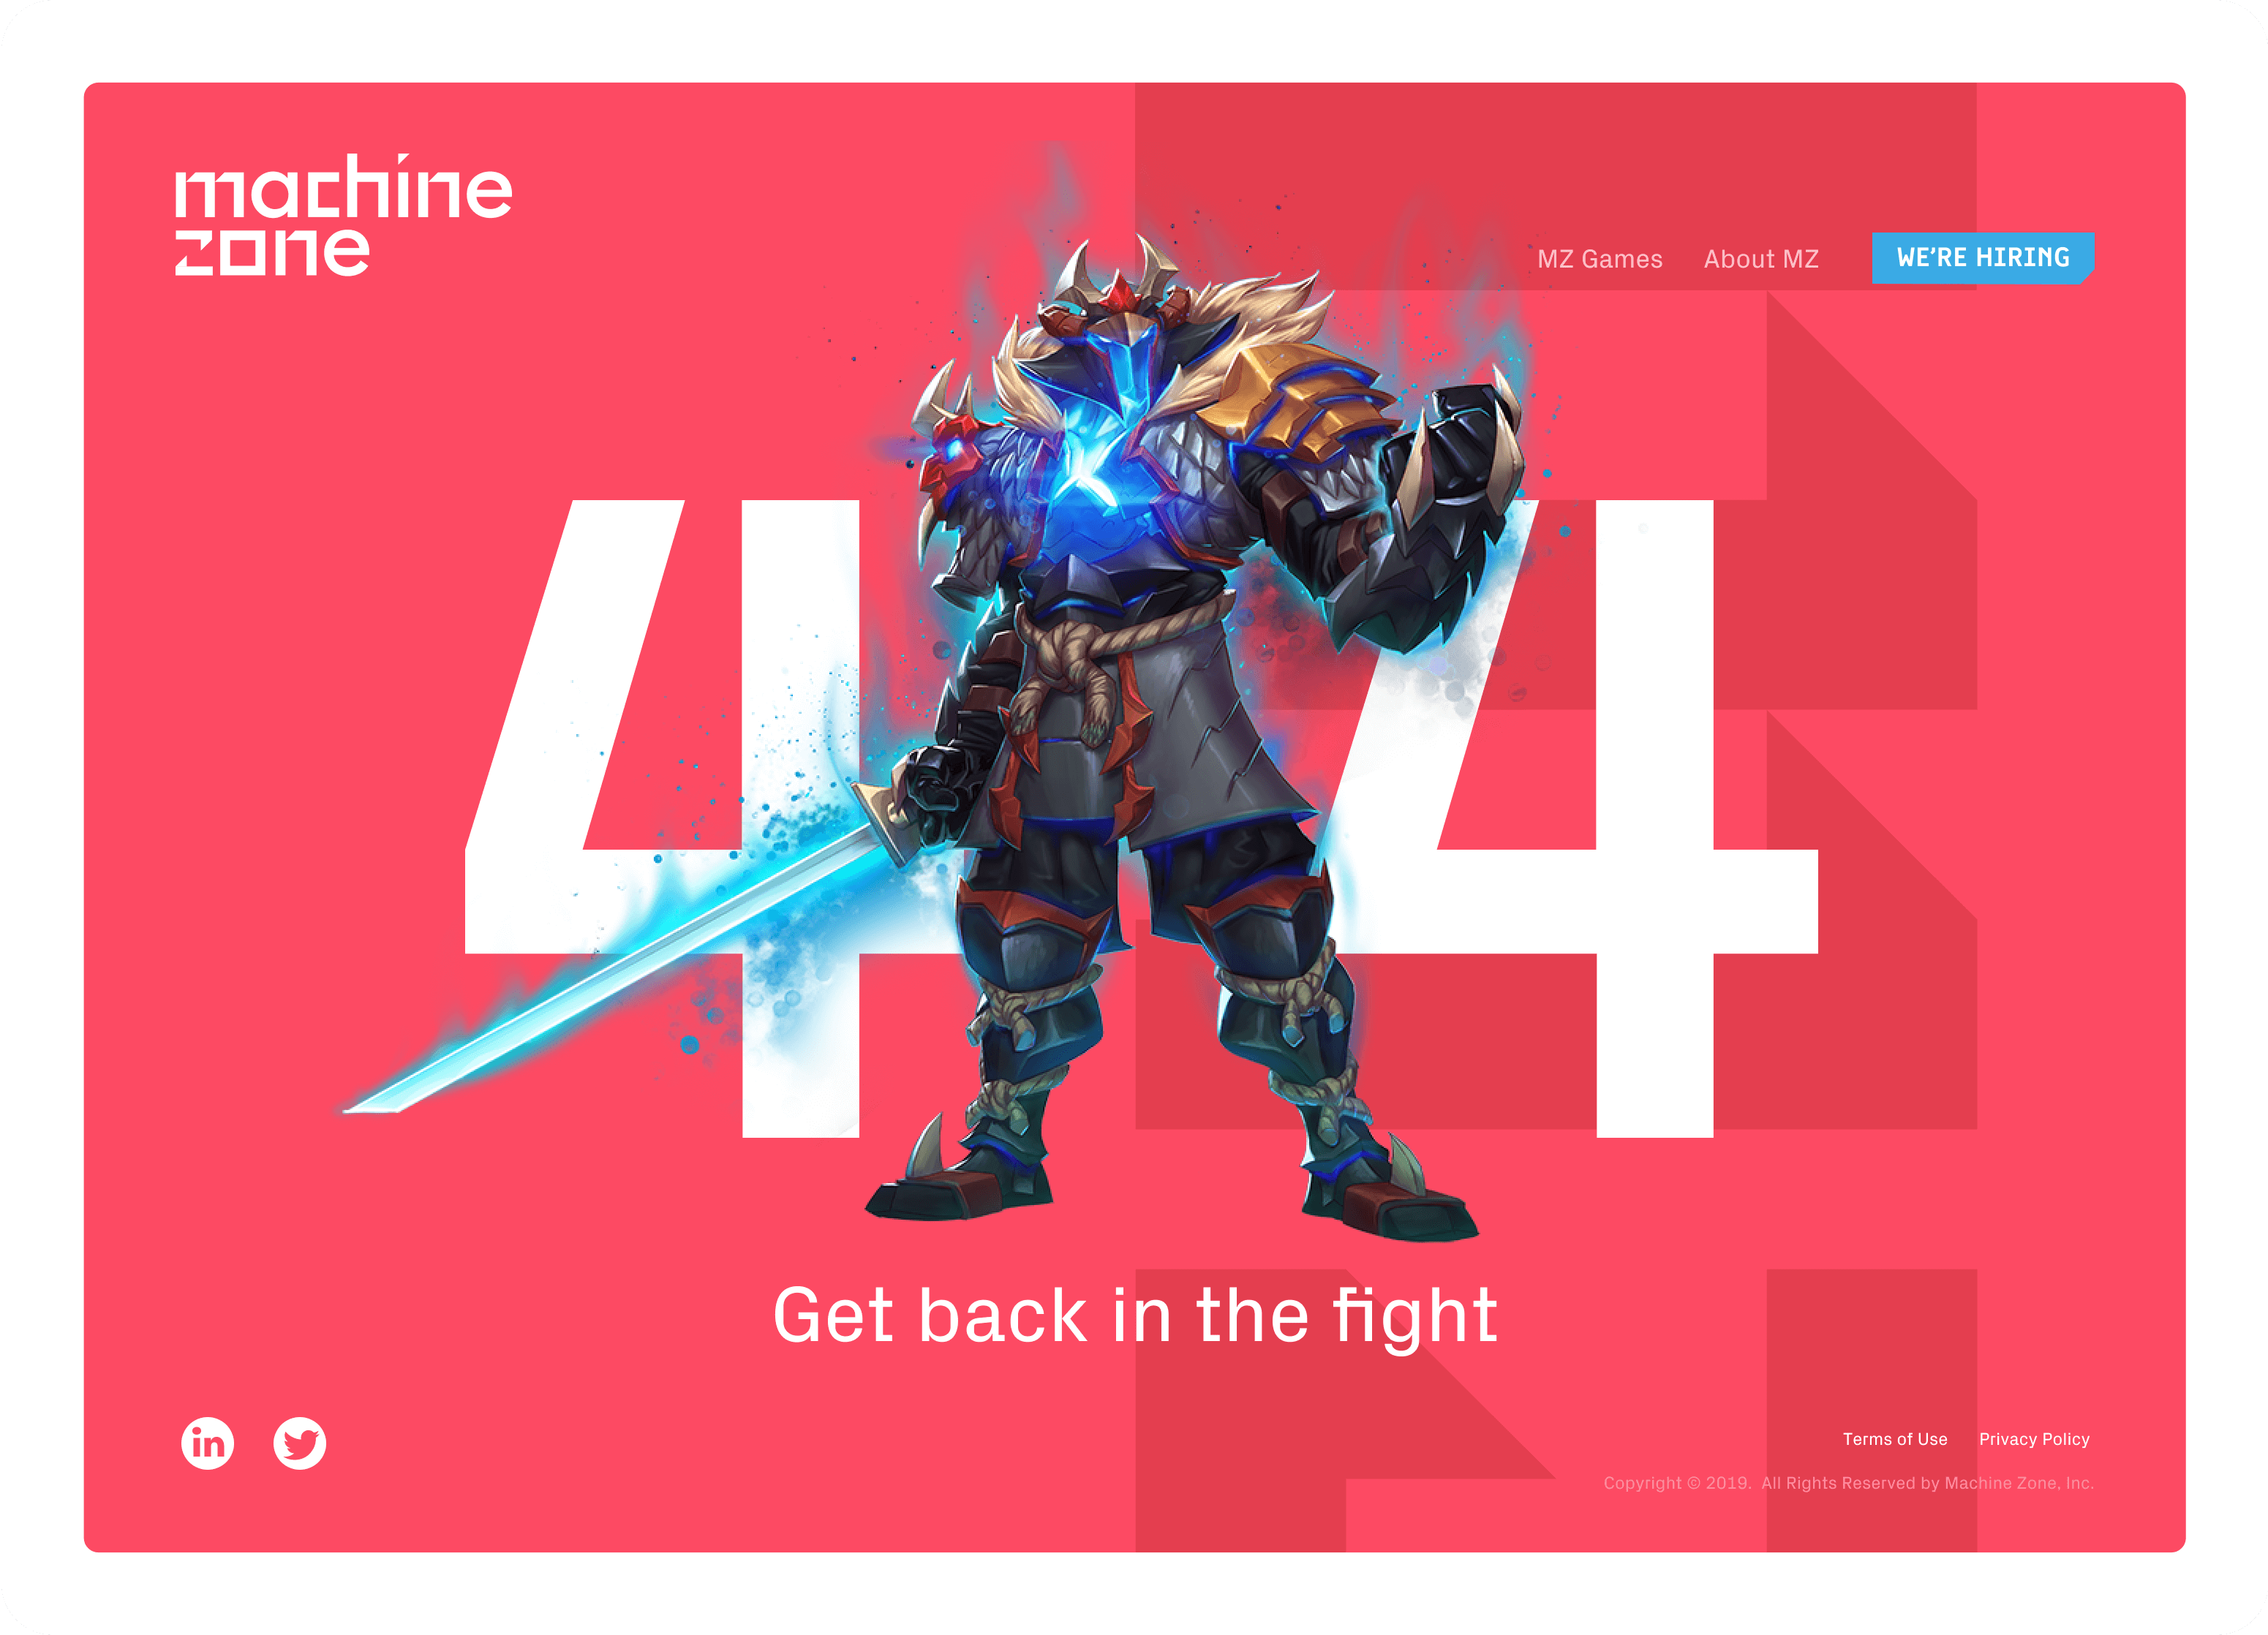 Machine Zone website